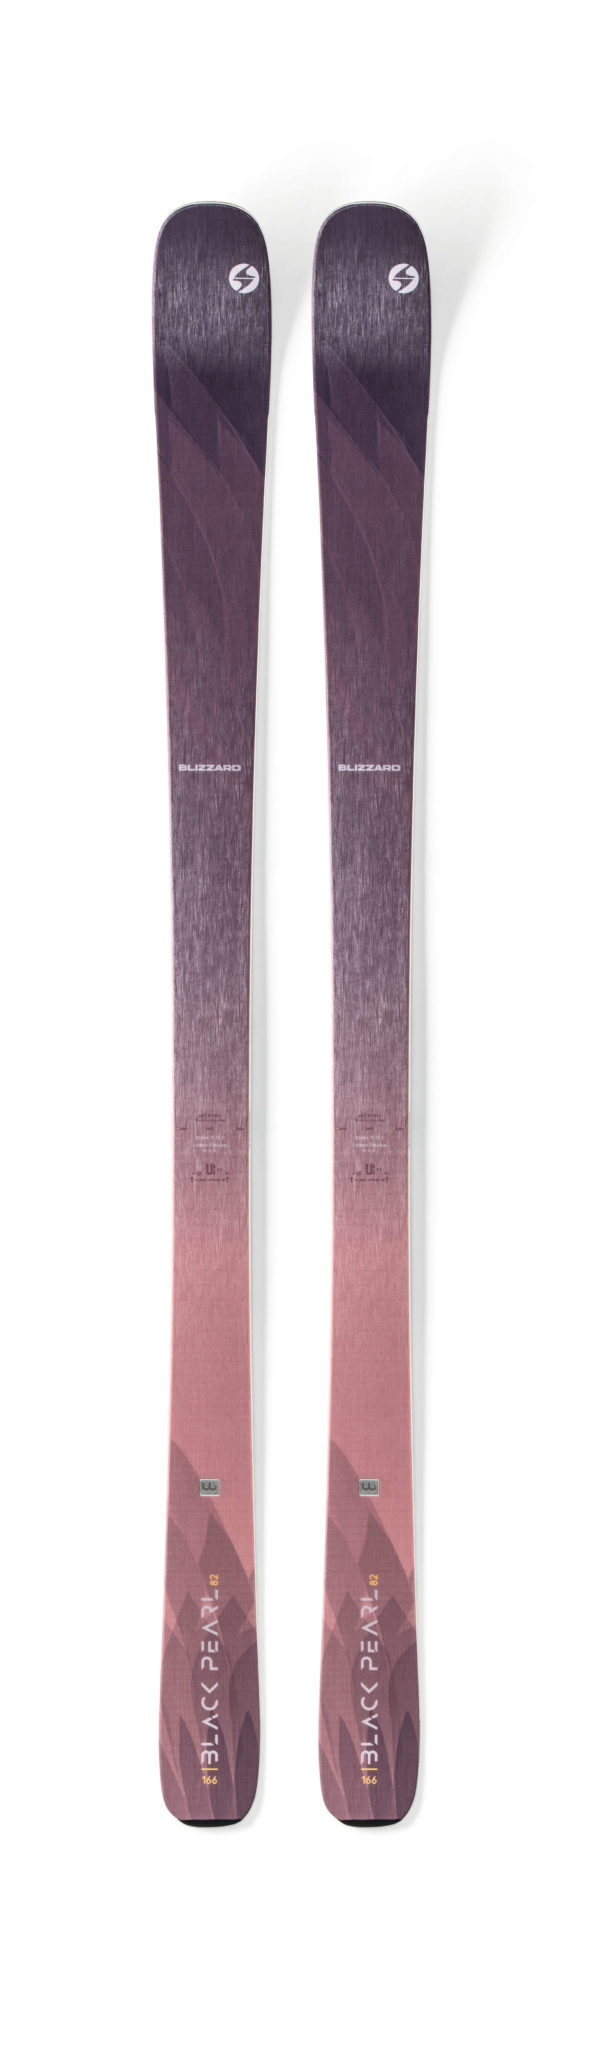 Blizzard Black Pearl 82 Skis (Flat) 2019-20 at Northern Ski Works